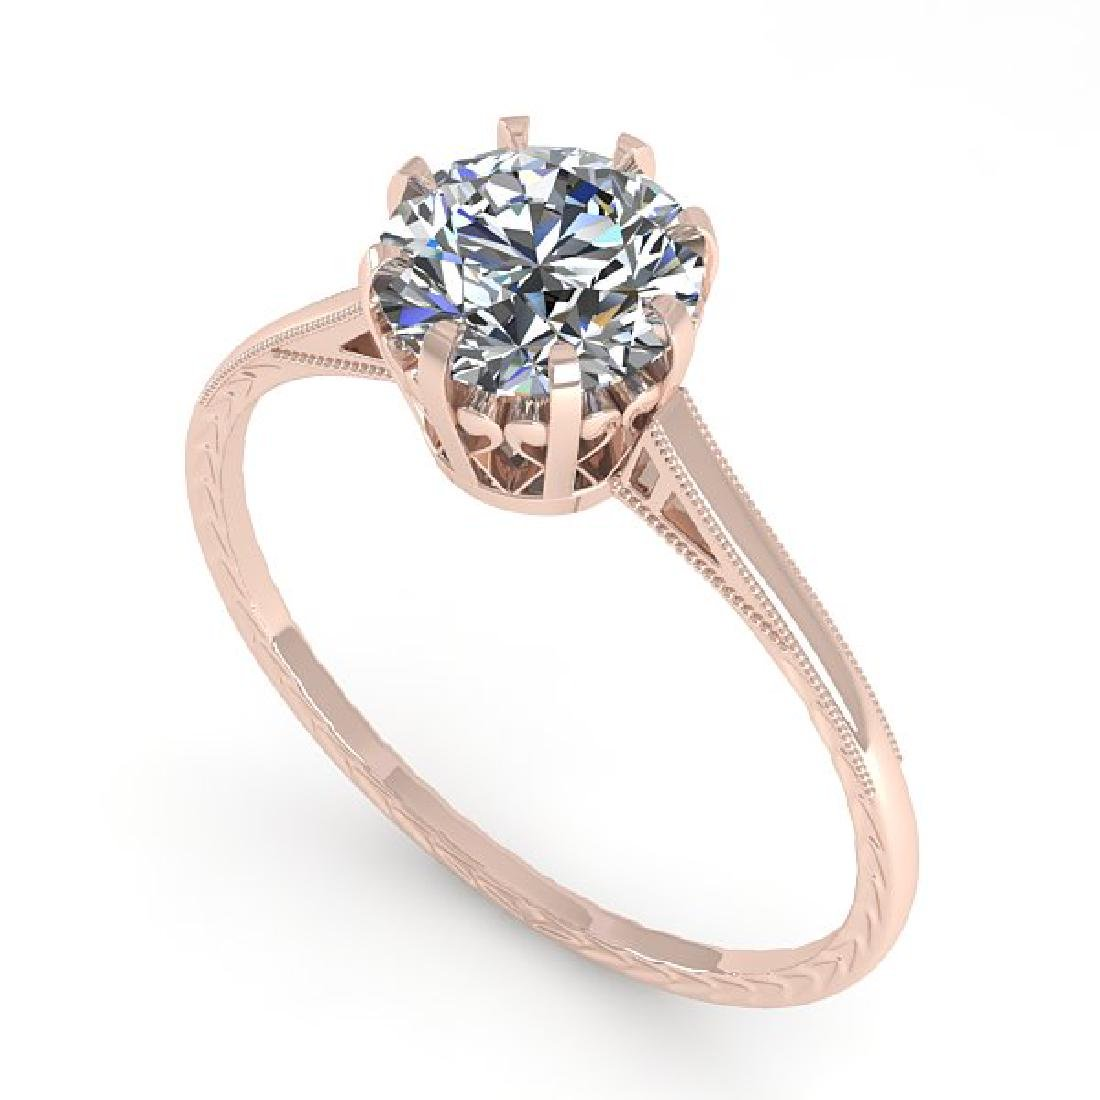 1.01 CTW Certified VS/SI Diamond Ring 14K Rose Gold - 2